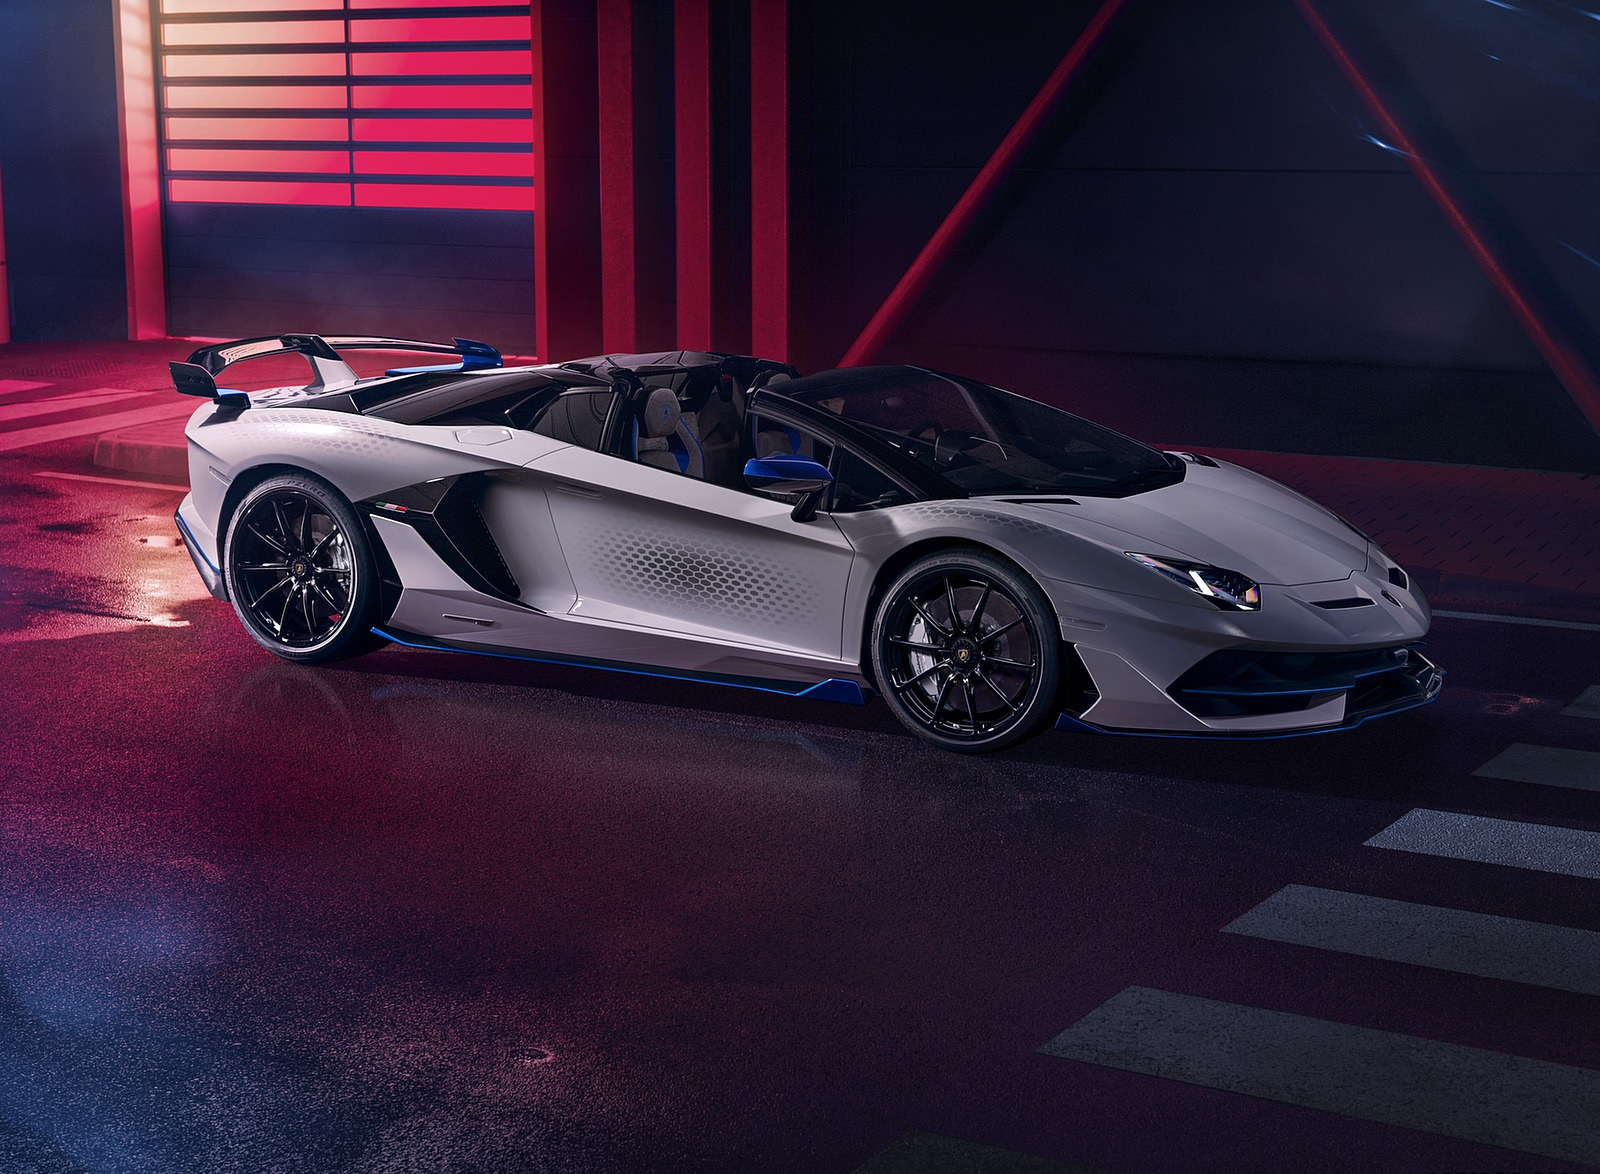 2020 Lamborghini Aventador SVJ Xago Edition Front Three-Quarter Wallpapers #2 of 12